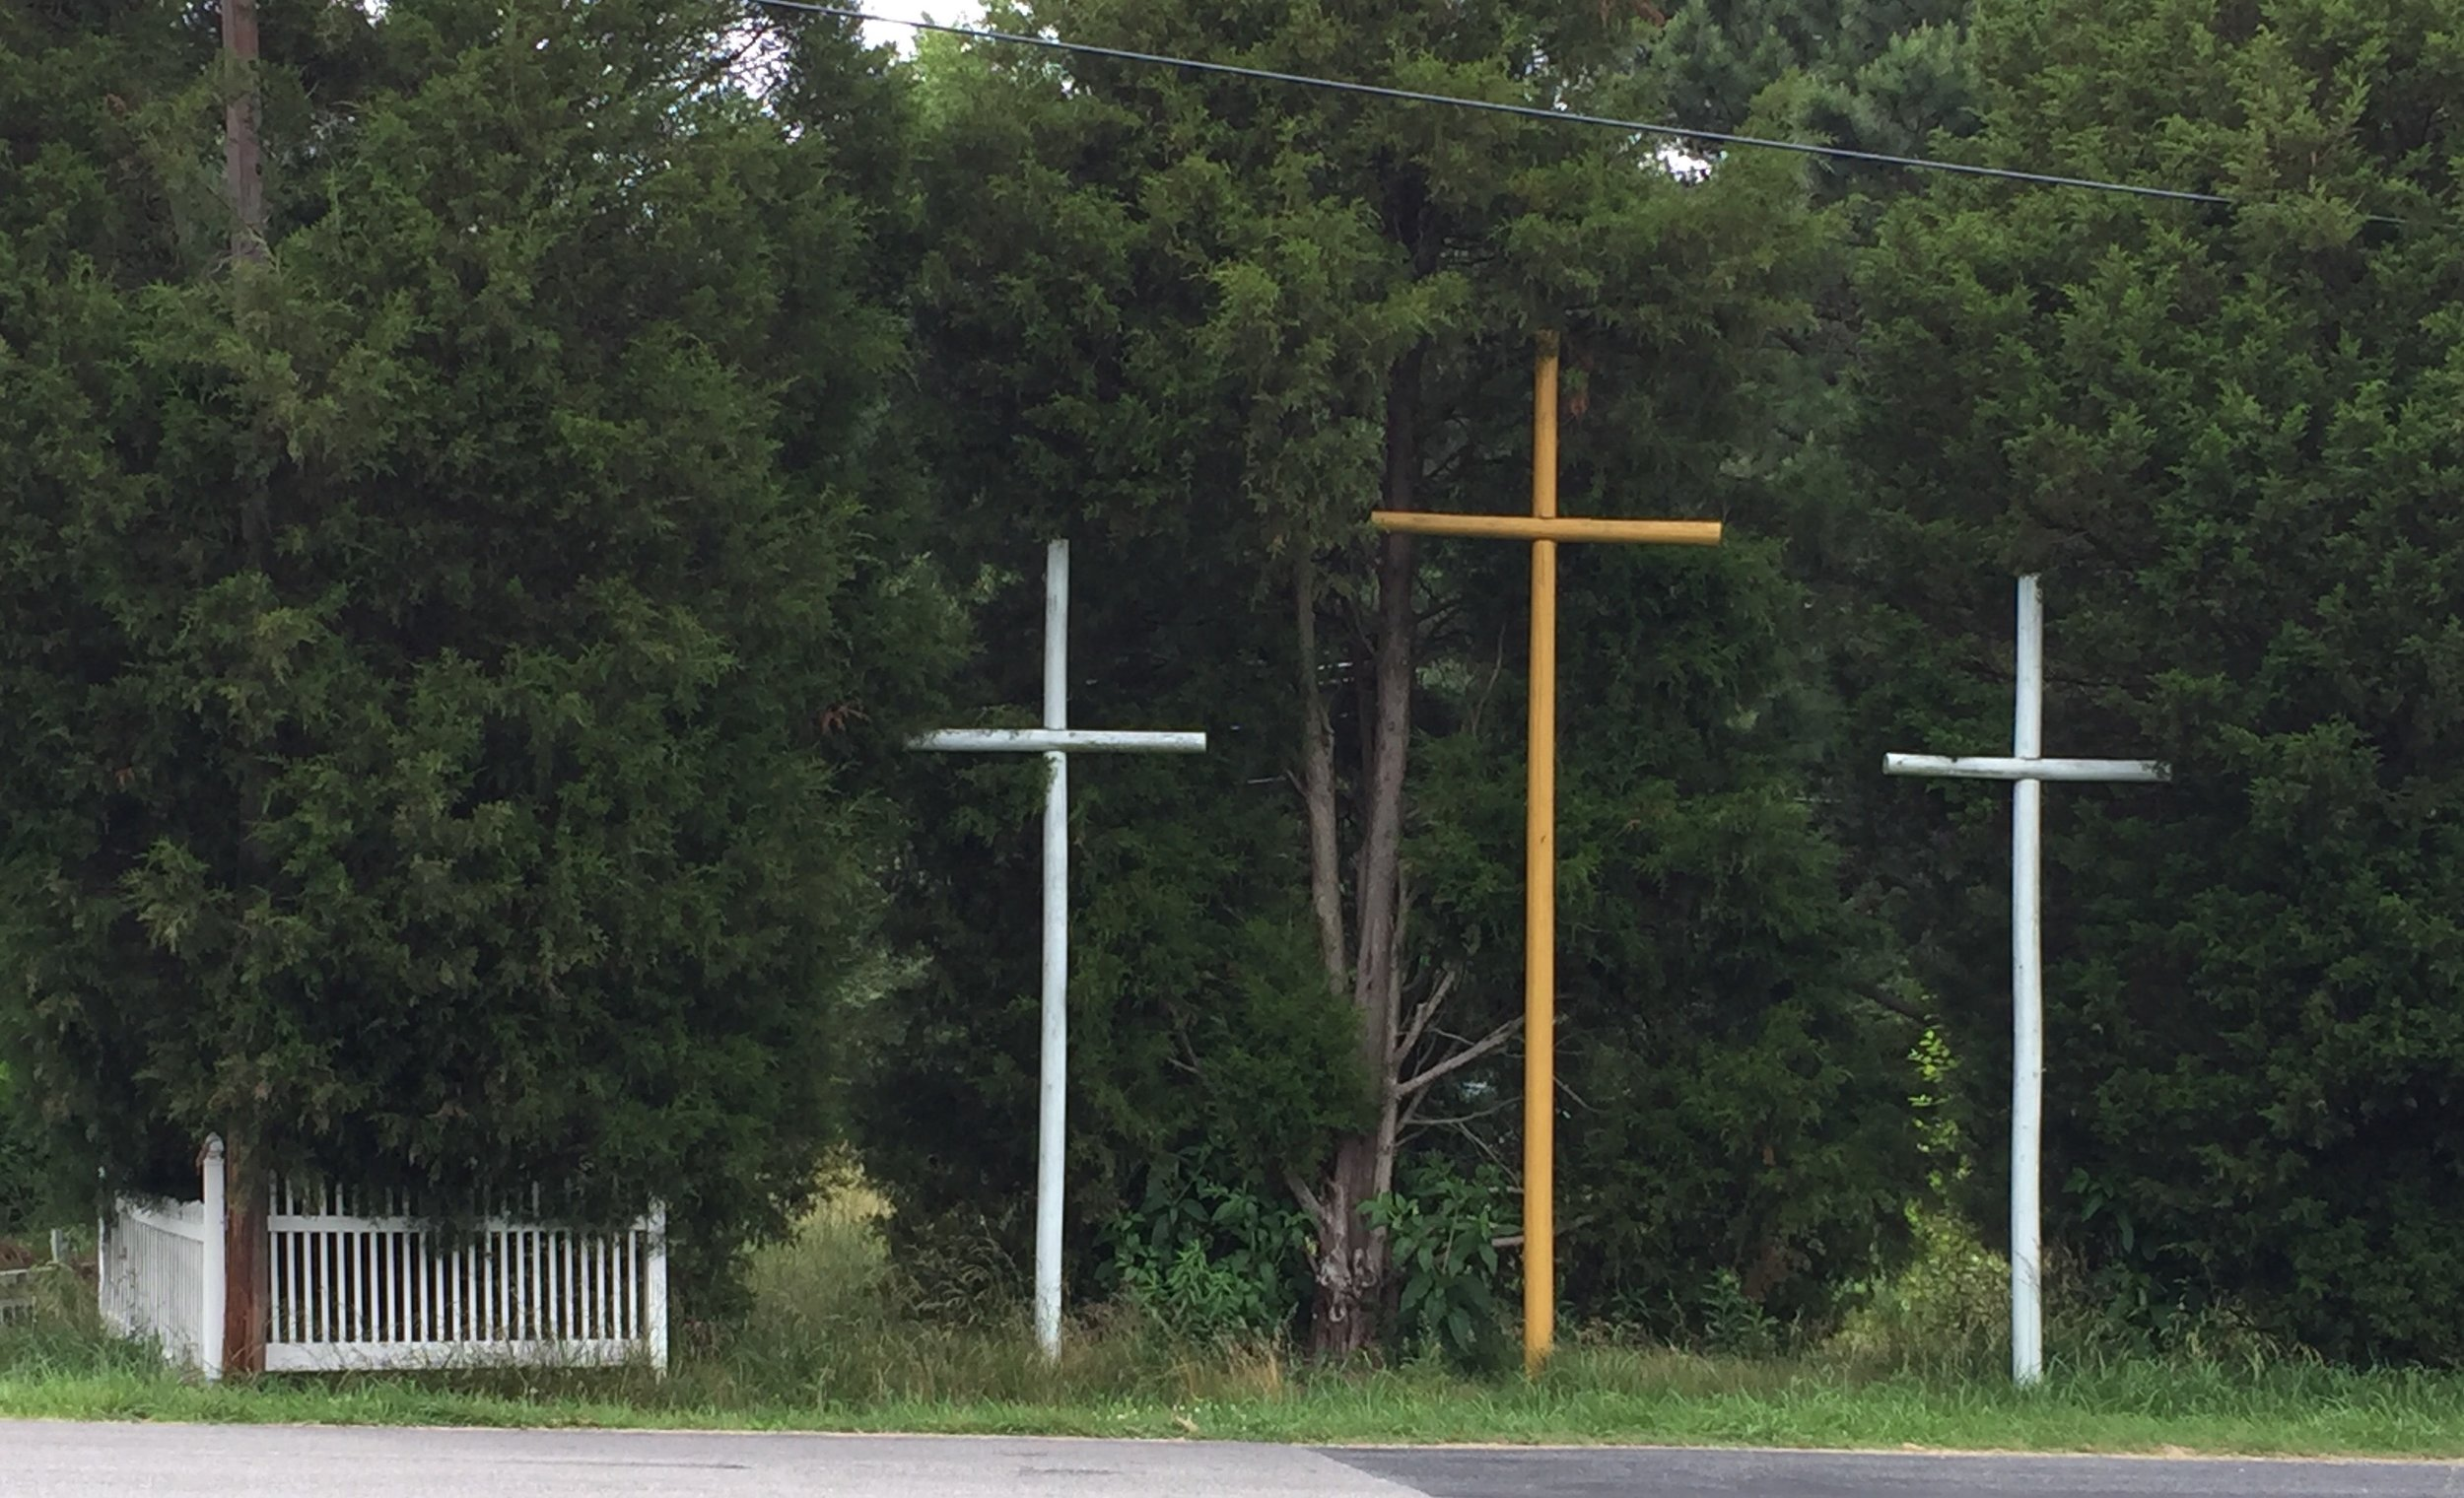 Lots of expressions of faith  along the roadways. Makes me smile.